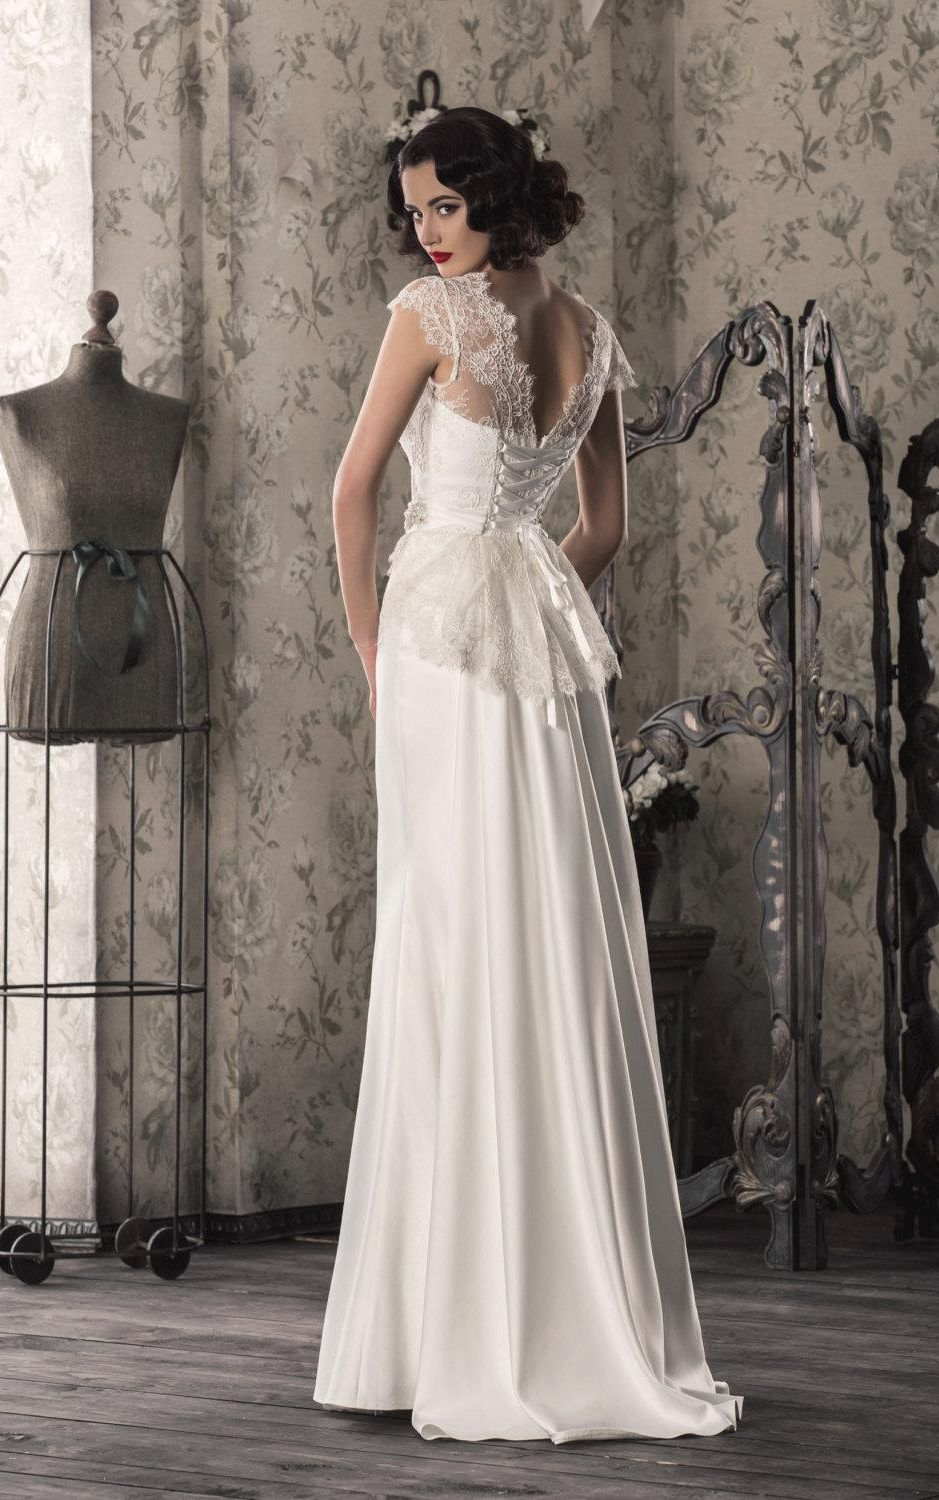 Pin by june bridals on june bridals backless wedding dresses shop affordable lace satin weddig dress with illusion lace up back at june bridals over 8000 chic wedding bridesmaid prom dresses more are on hot sale ombrellifo Images